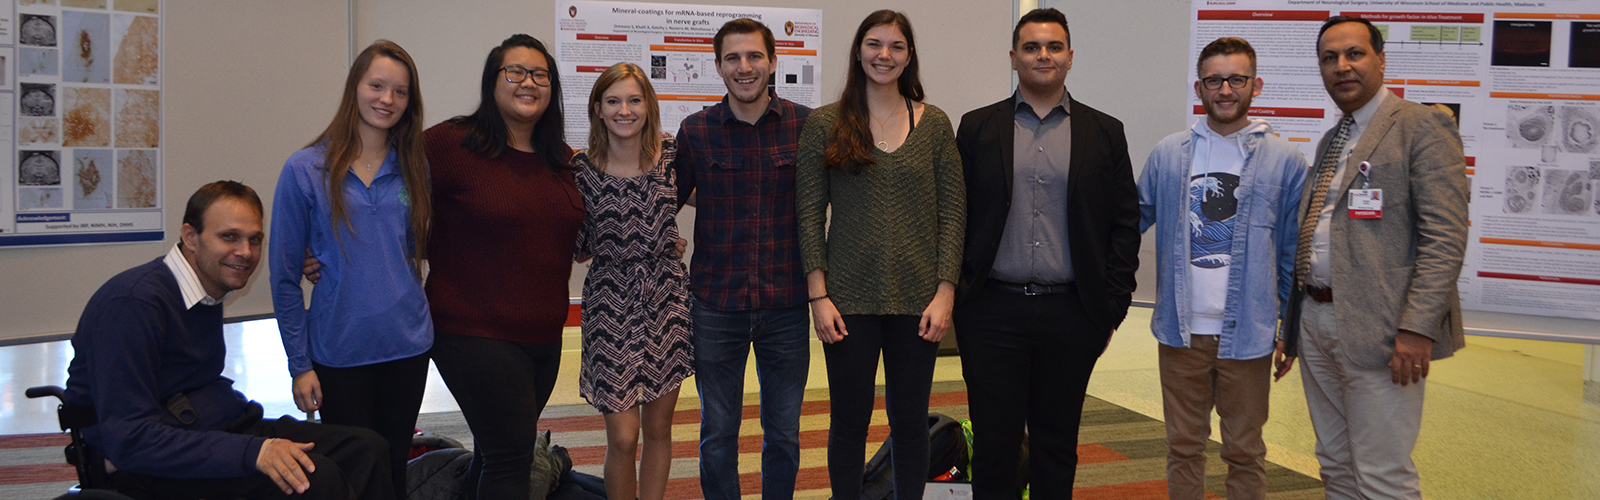 Dr. Hanna Lab members at Research Day 2018